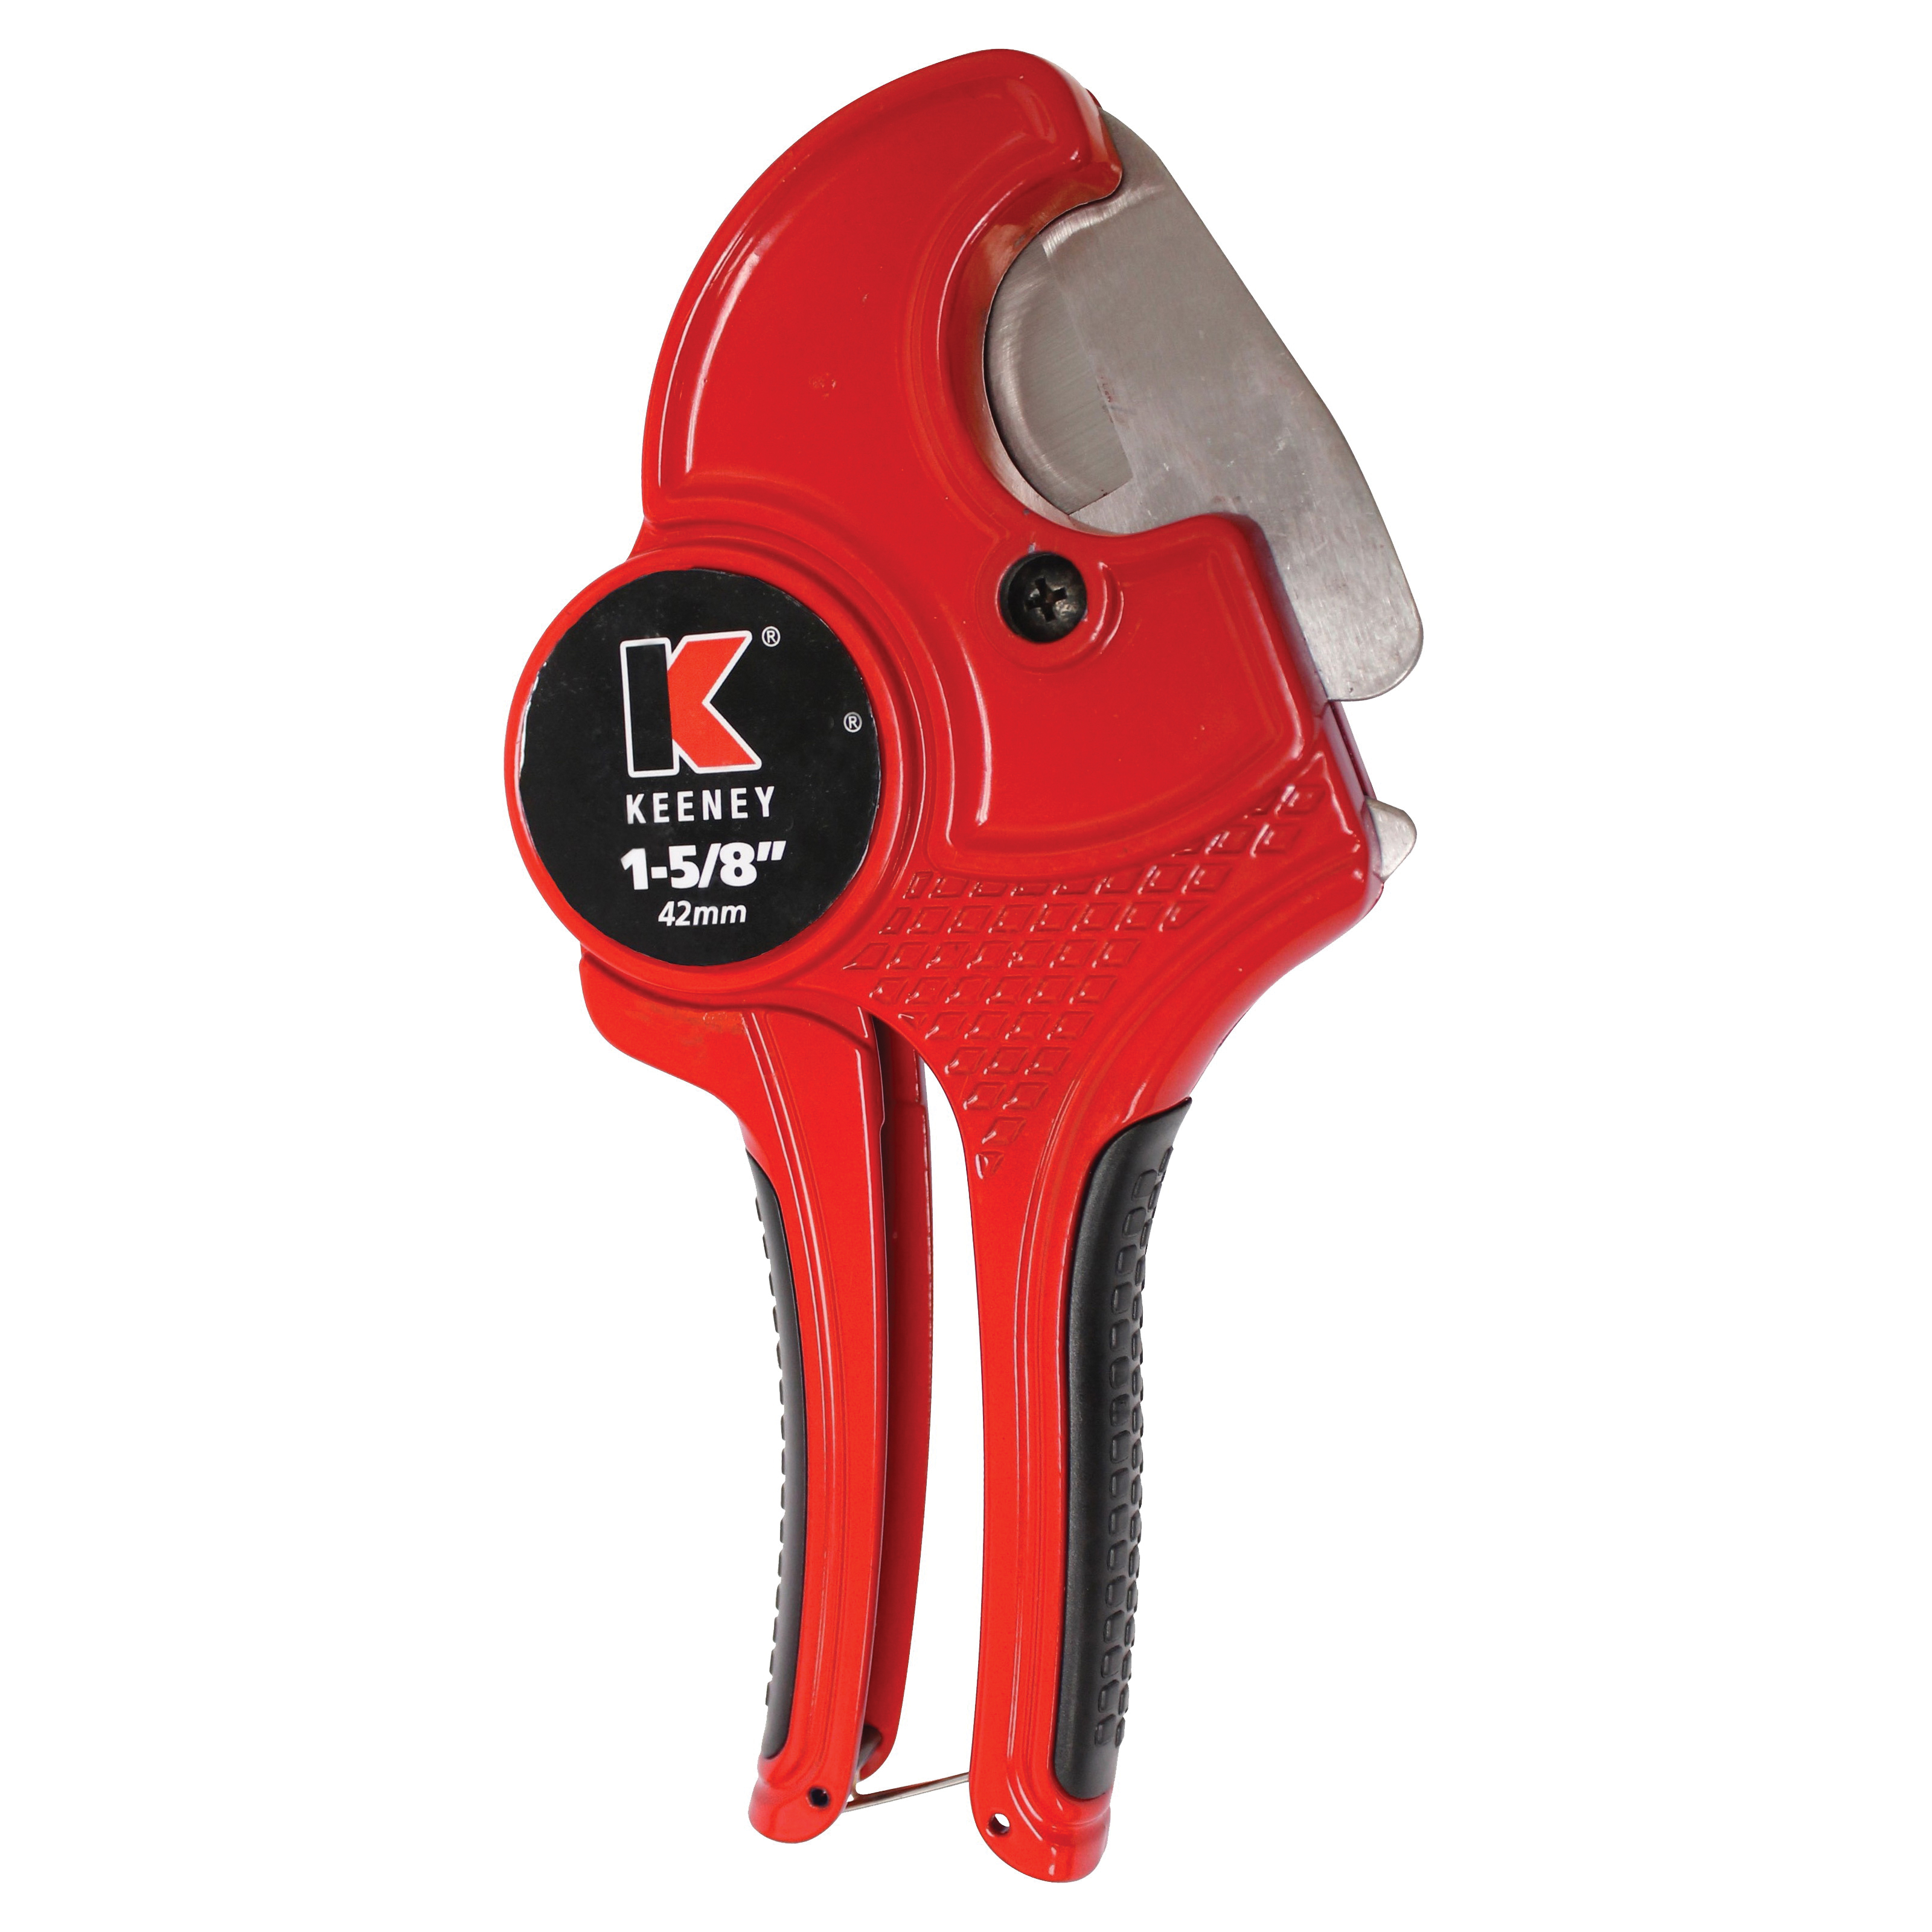 Picture of Keeney K840-101 Pipe Cutter, 1-5/8 in Max Pipe/Tube Dia, HCS Blade